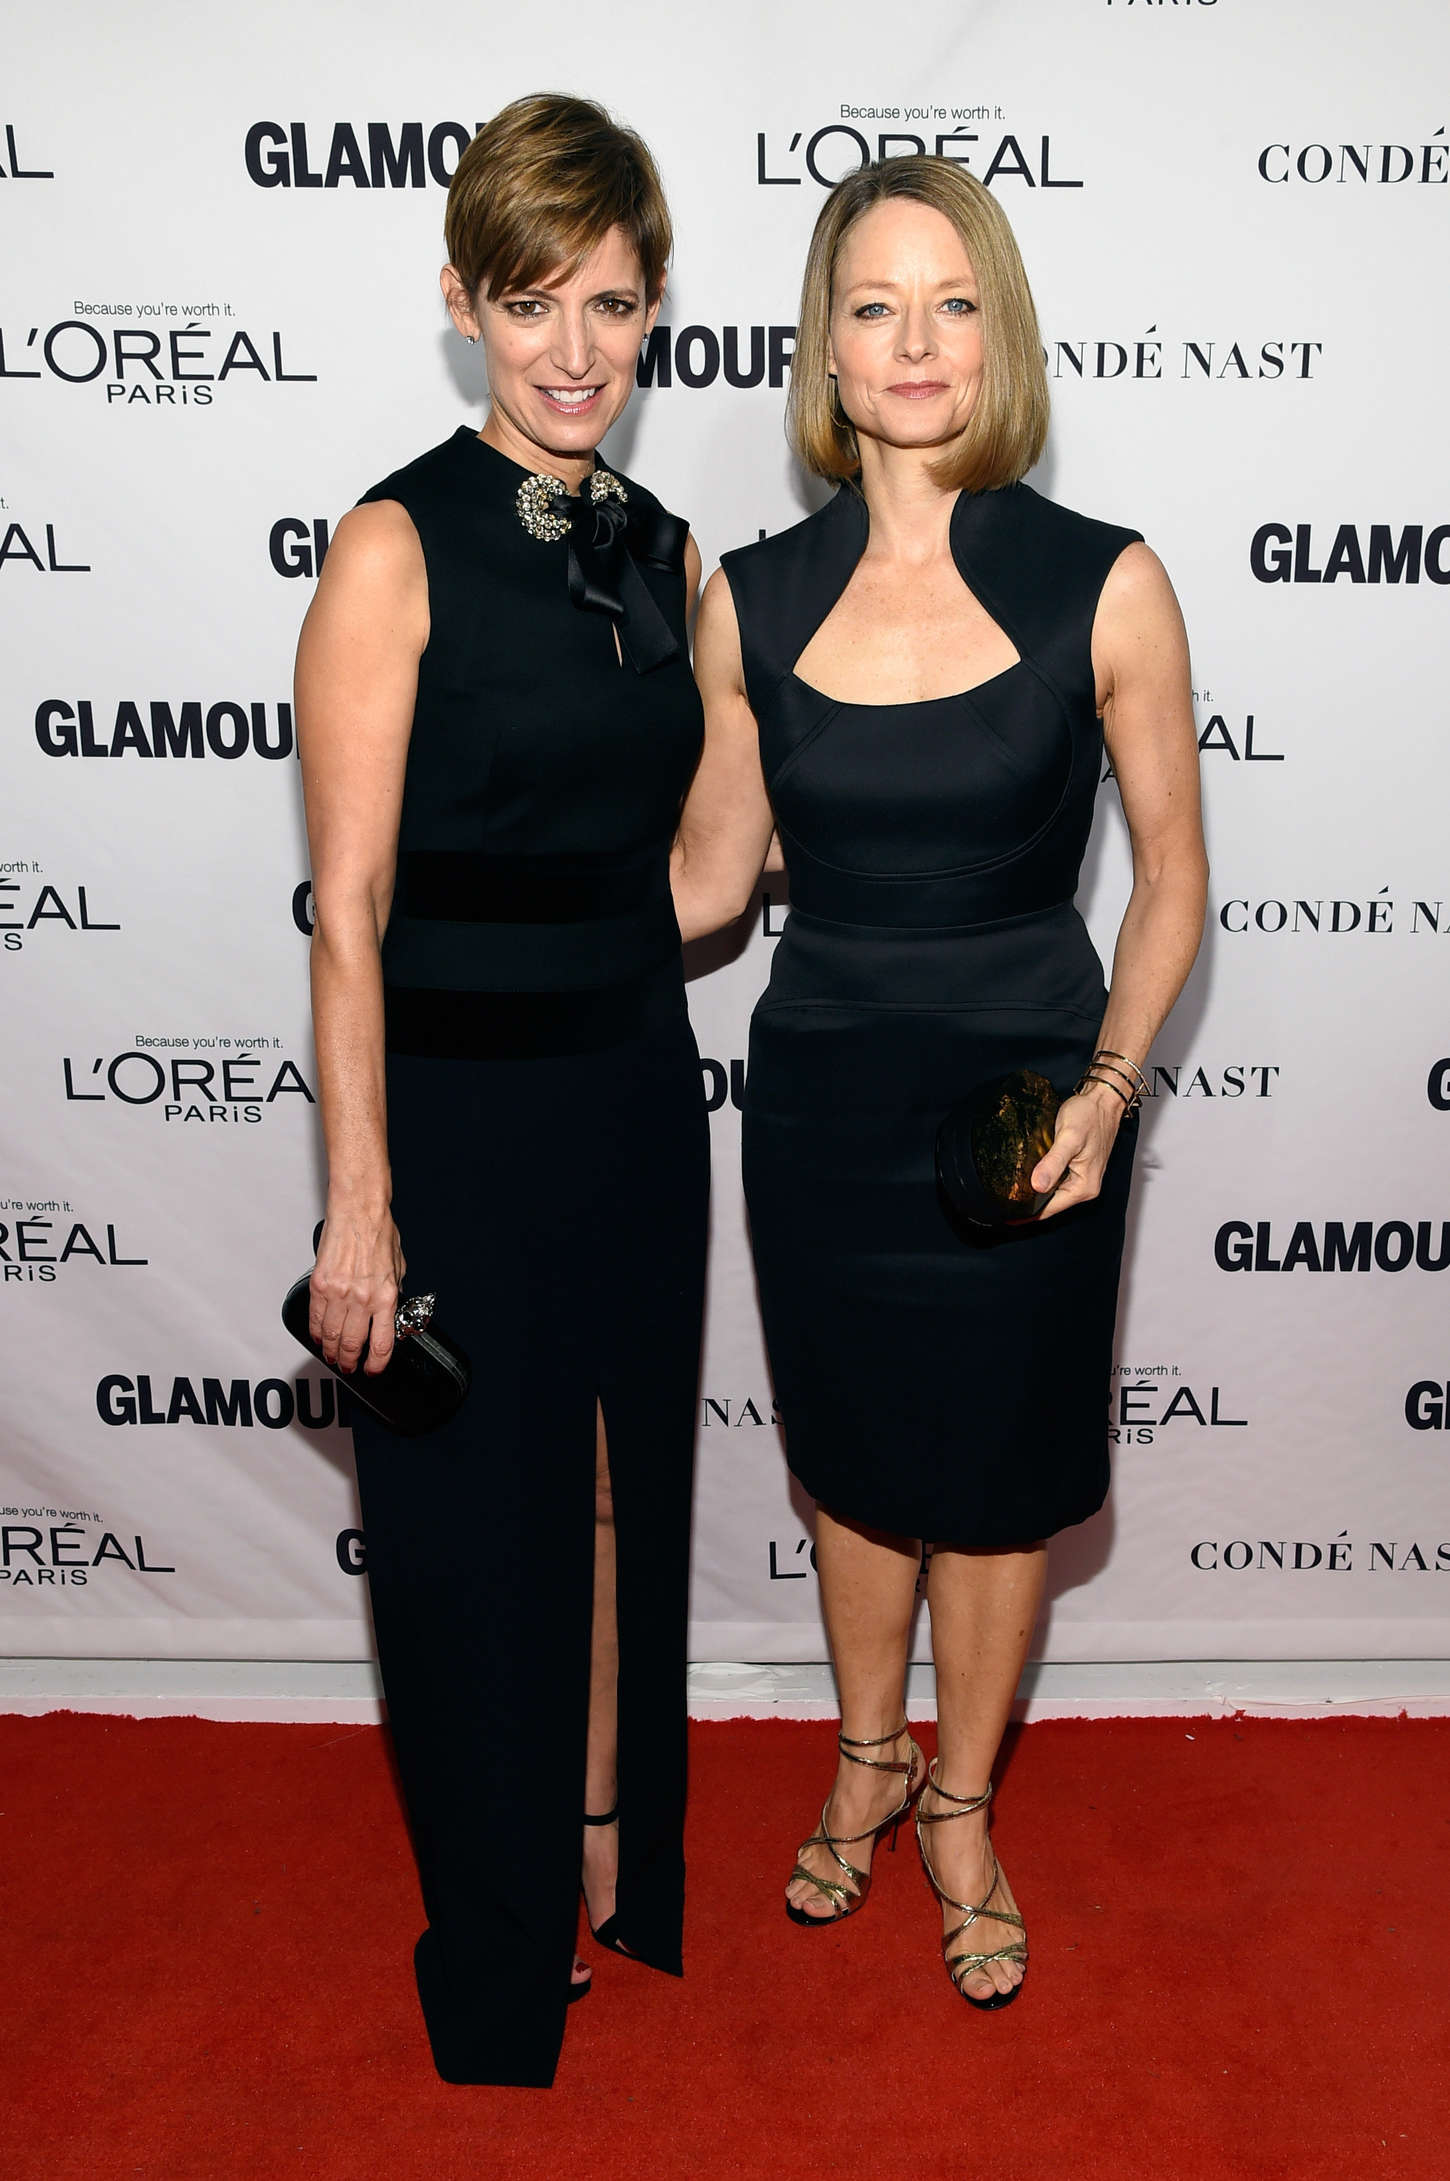 Jodie Foster Glamour Women Of The Year Awards in New York